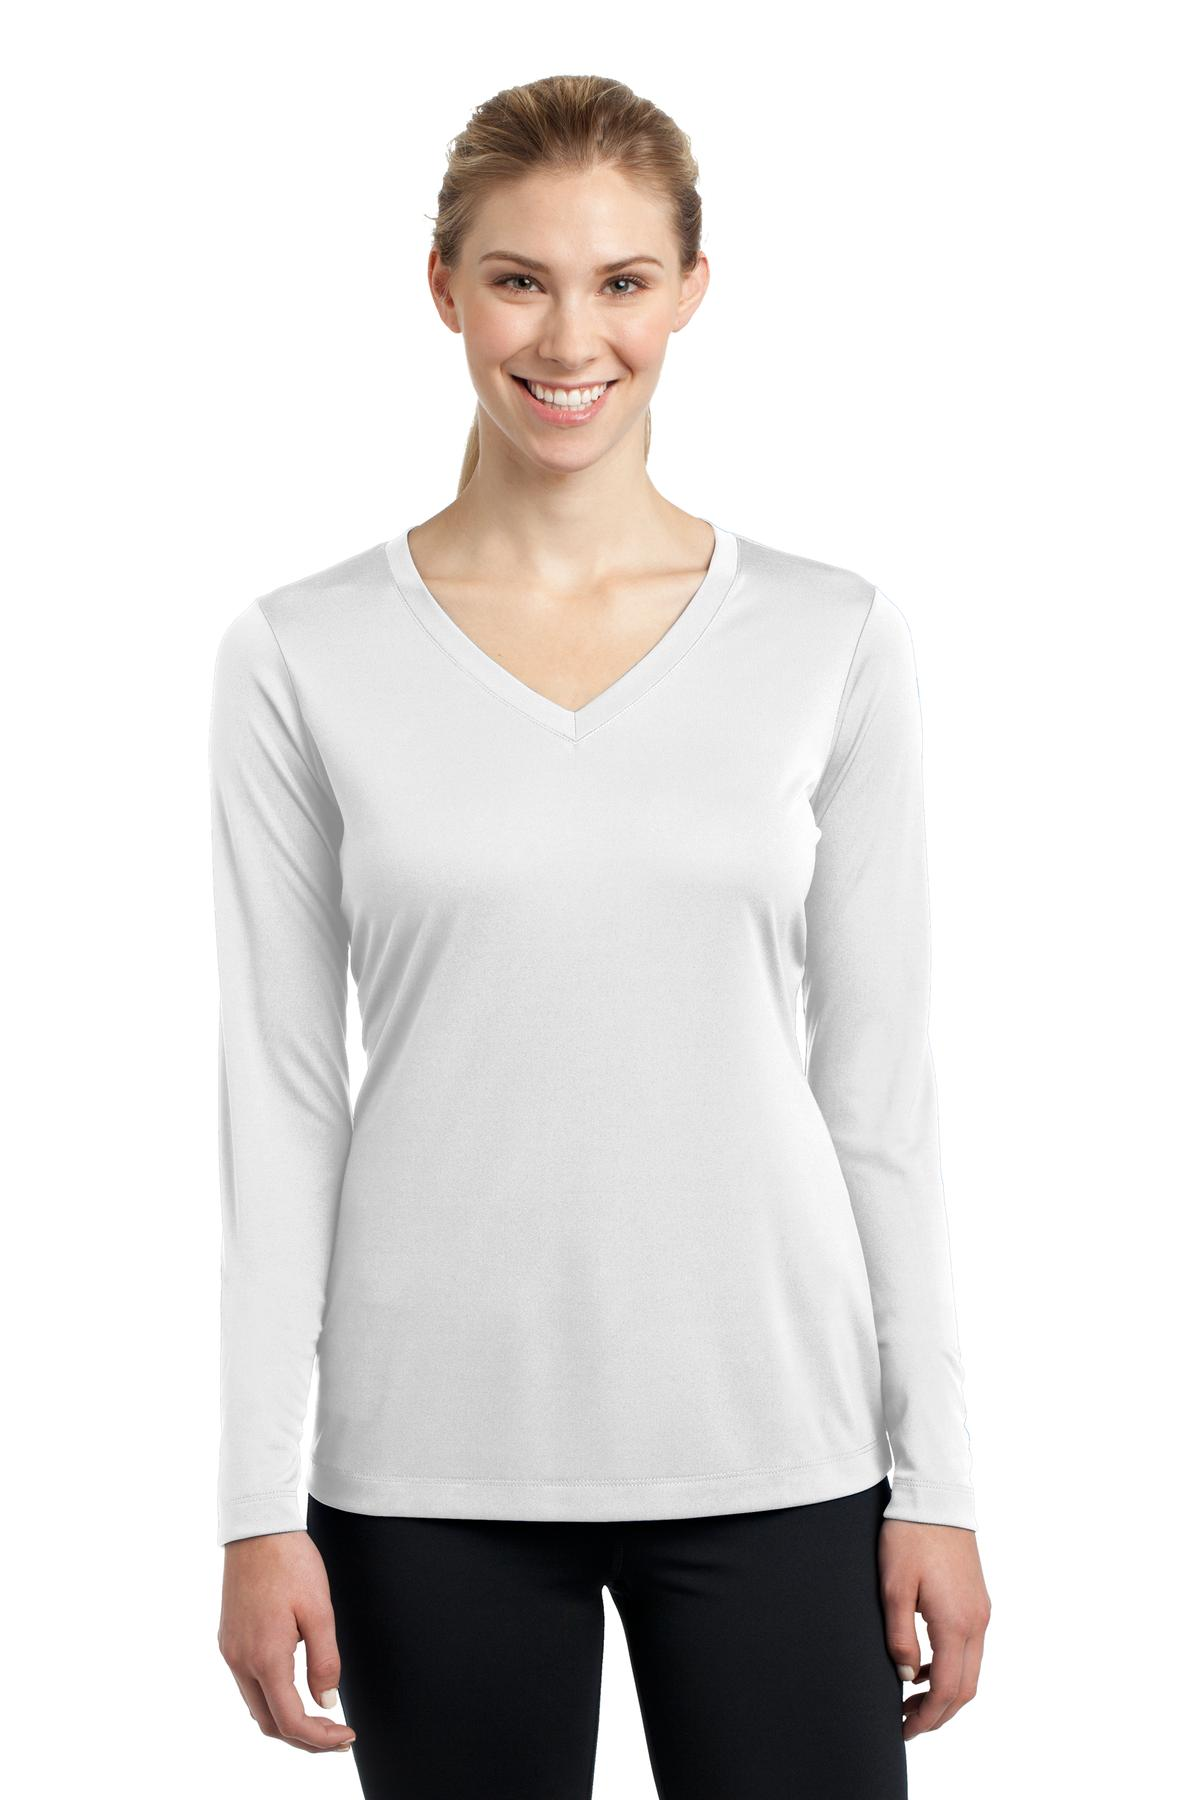 Sport-Tek ®  Ladies Long Sleeve PosiCharge ®  Competitor™ V-Neck Tee. LST353LS - White